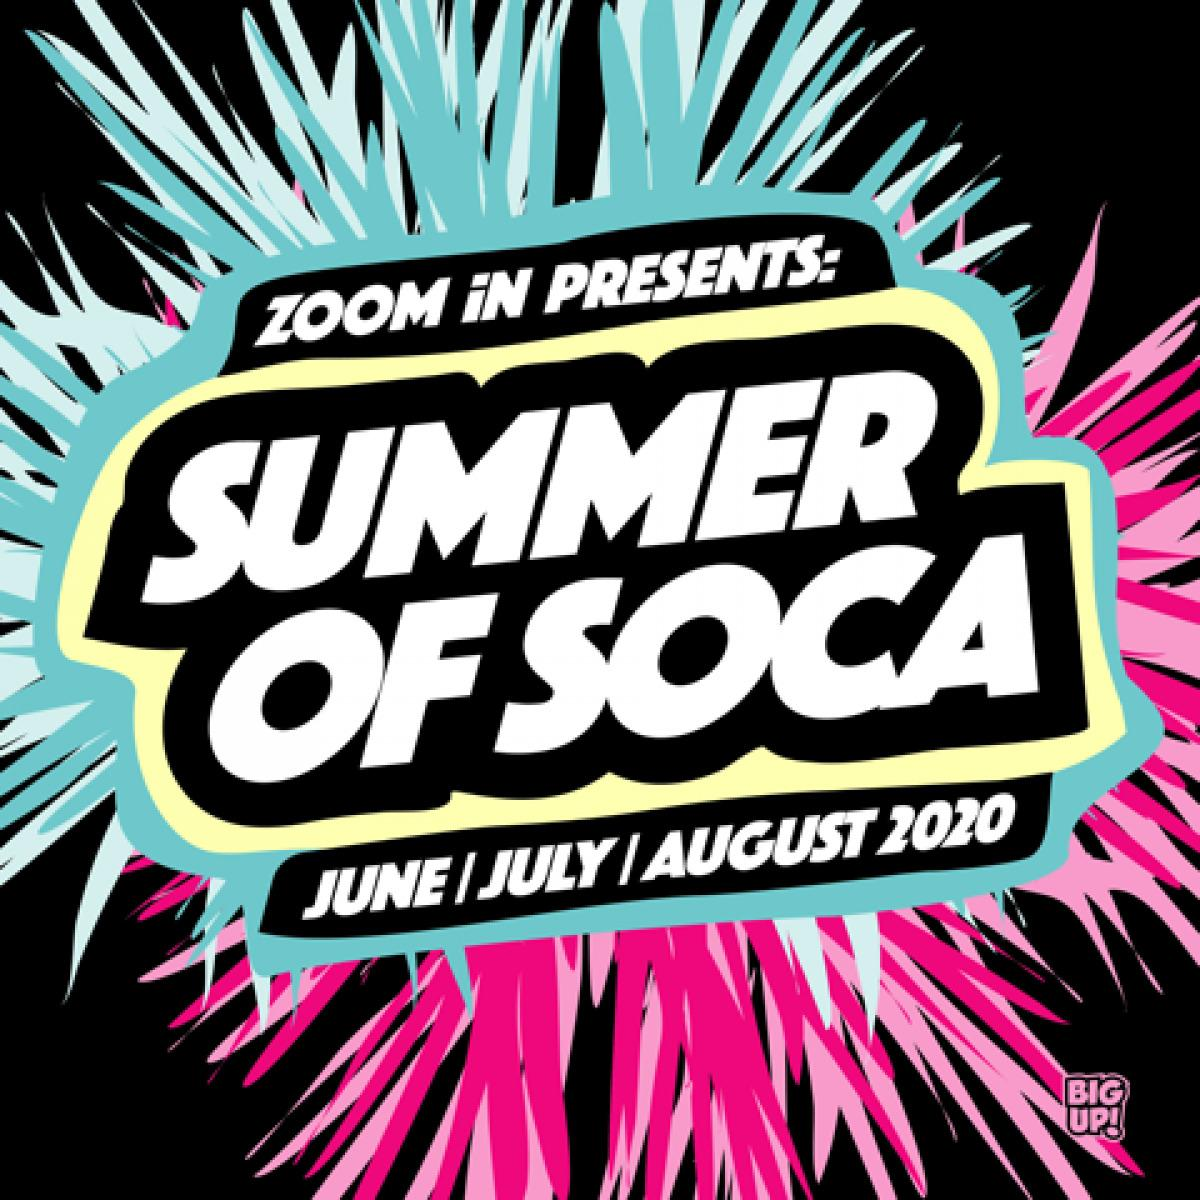 Summer Of Soca -  Nothing Hill Carnival Edition  flyer or graphic.